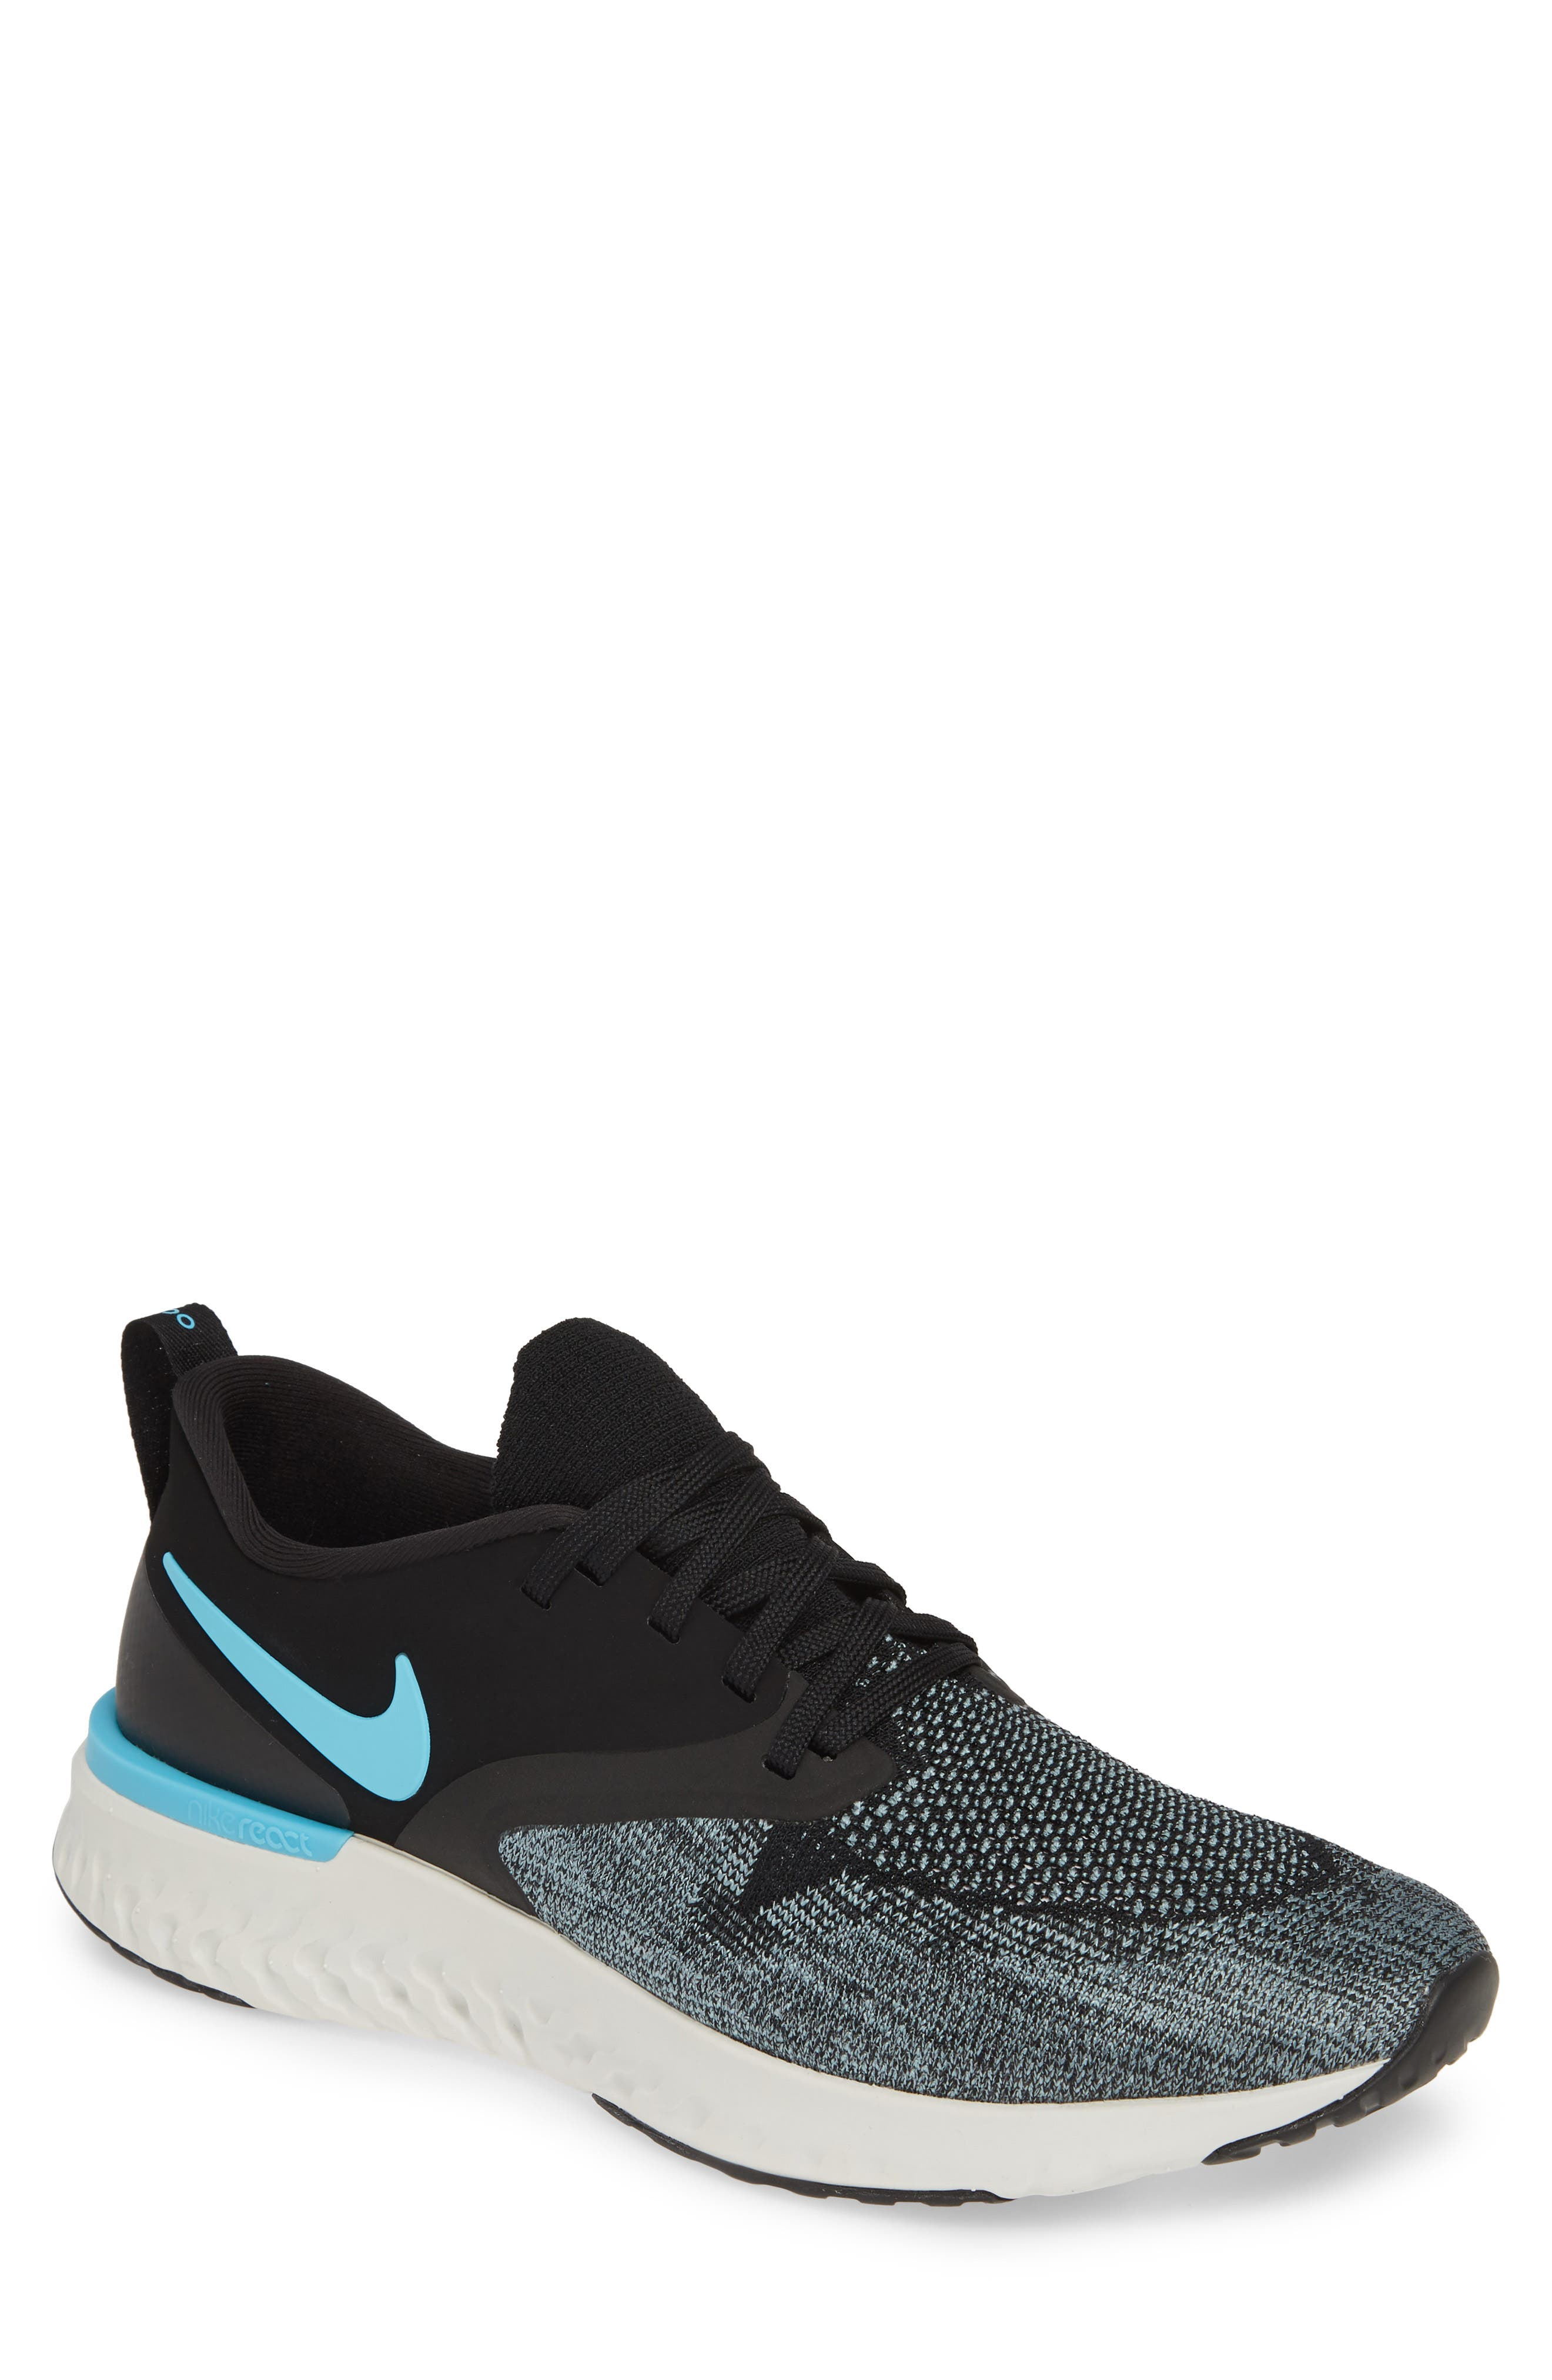 NIKE,                             Odyssey React 2 Flyknit Running Shoe,                             Main thumbnail 1, color,                             BLACK/ BLUE FURY/ AVIATOR GREY